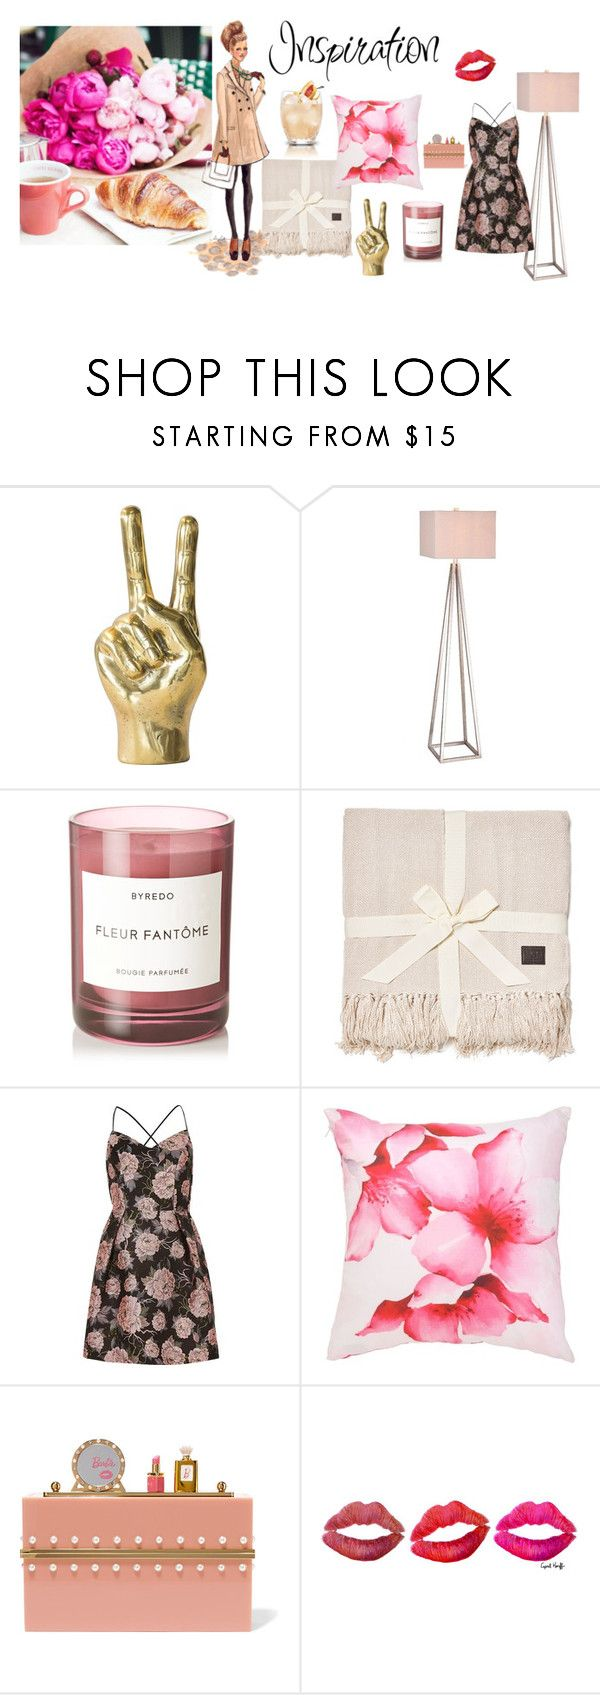 """""""Pinks & florals"""" by phillips-sally ❤ liked on Polyvore featuring interior, interiors, interior design, home, home decor, interior decorating, JAlexander, Byredo, UGG and River Island"""